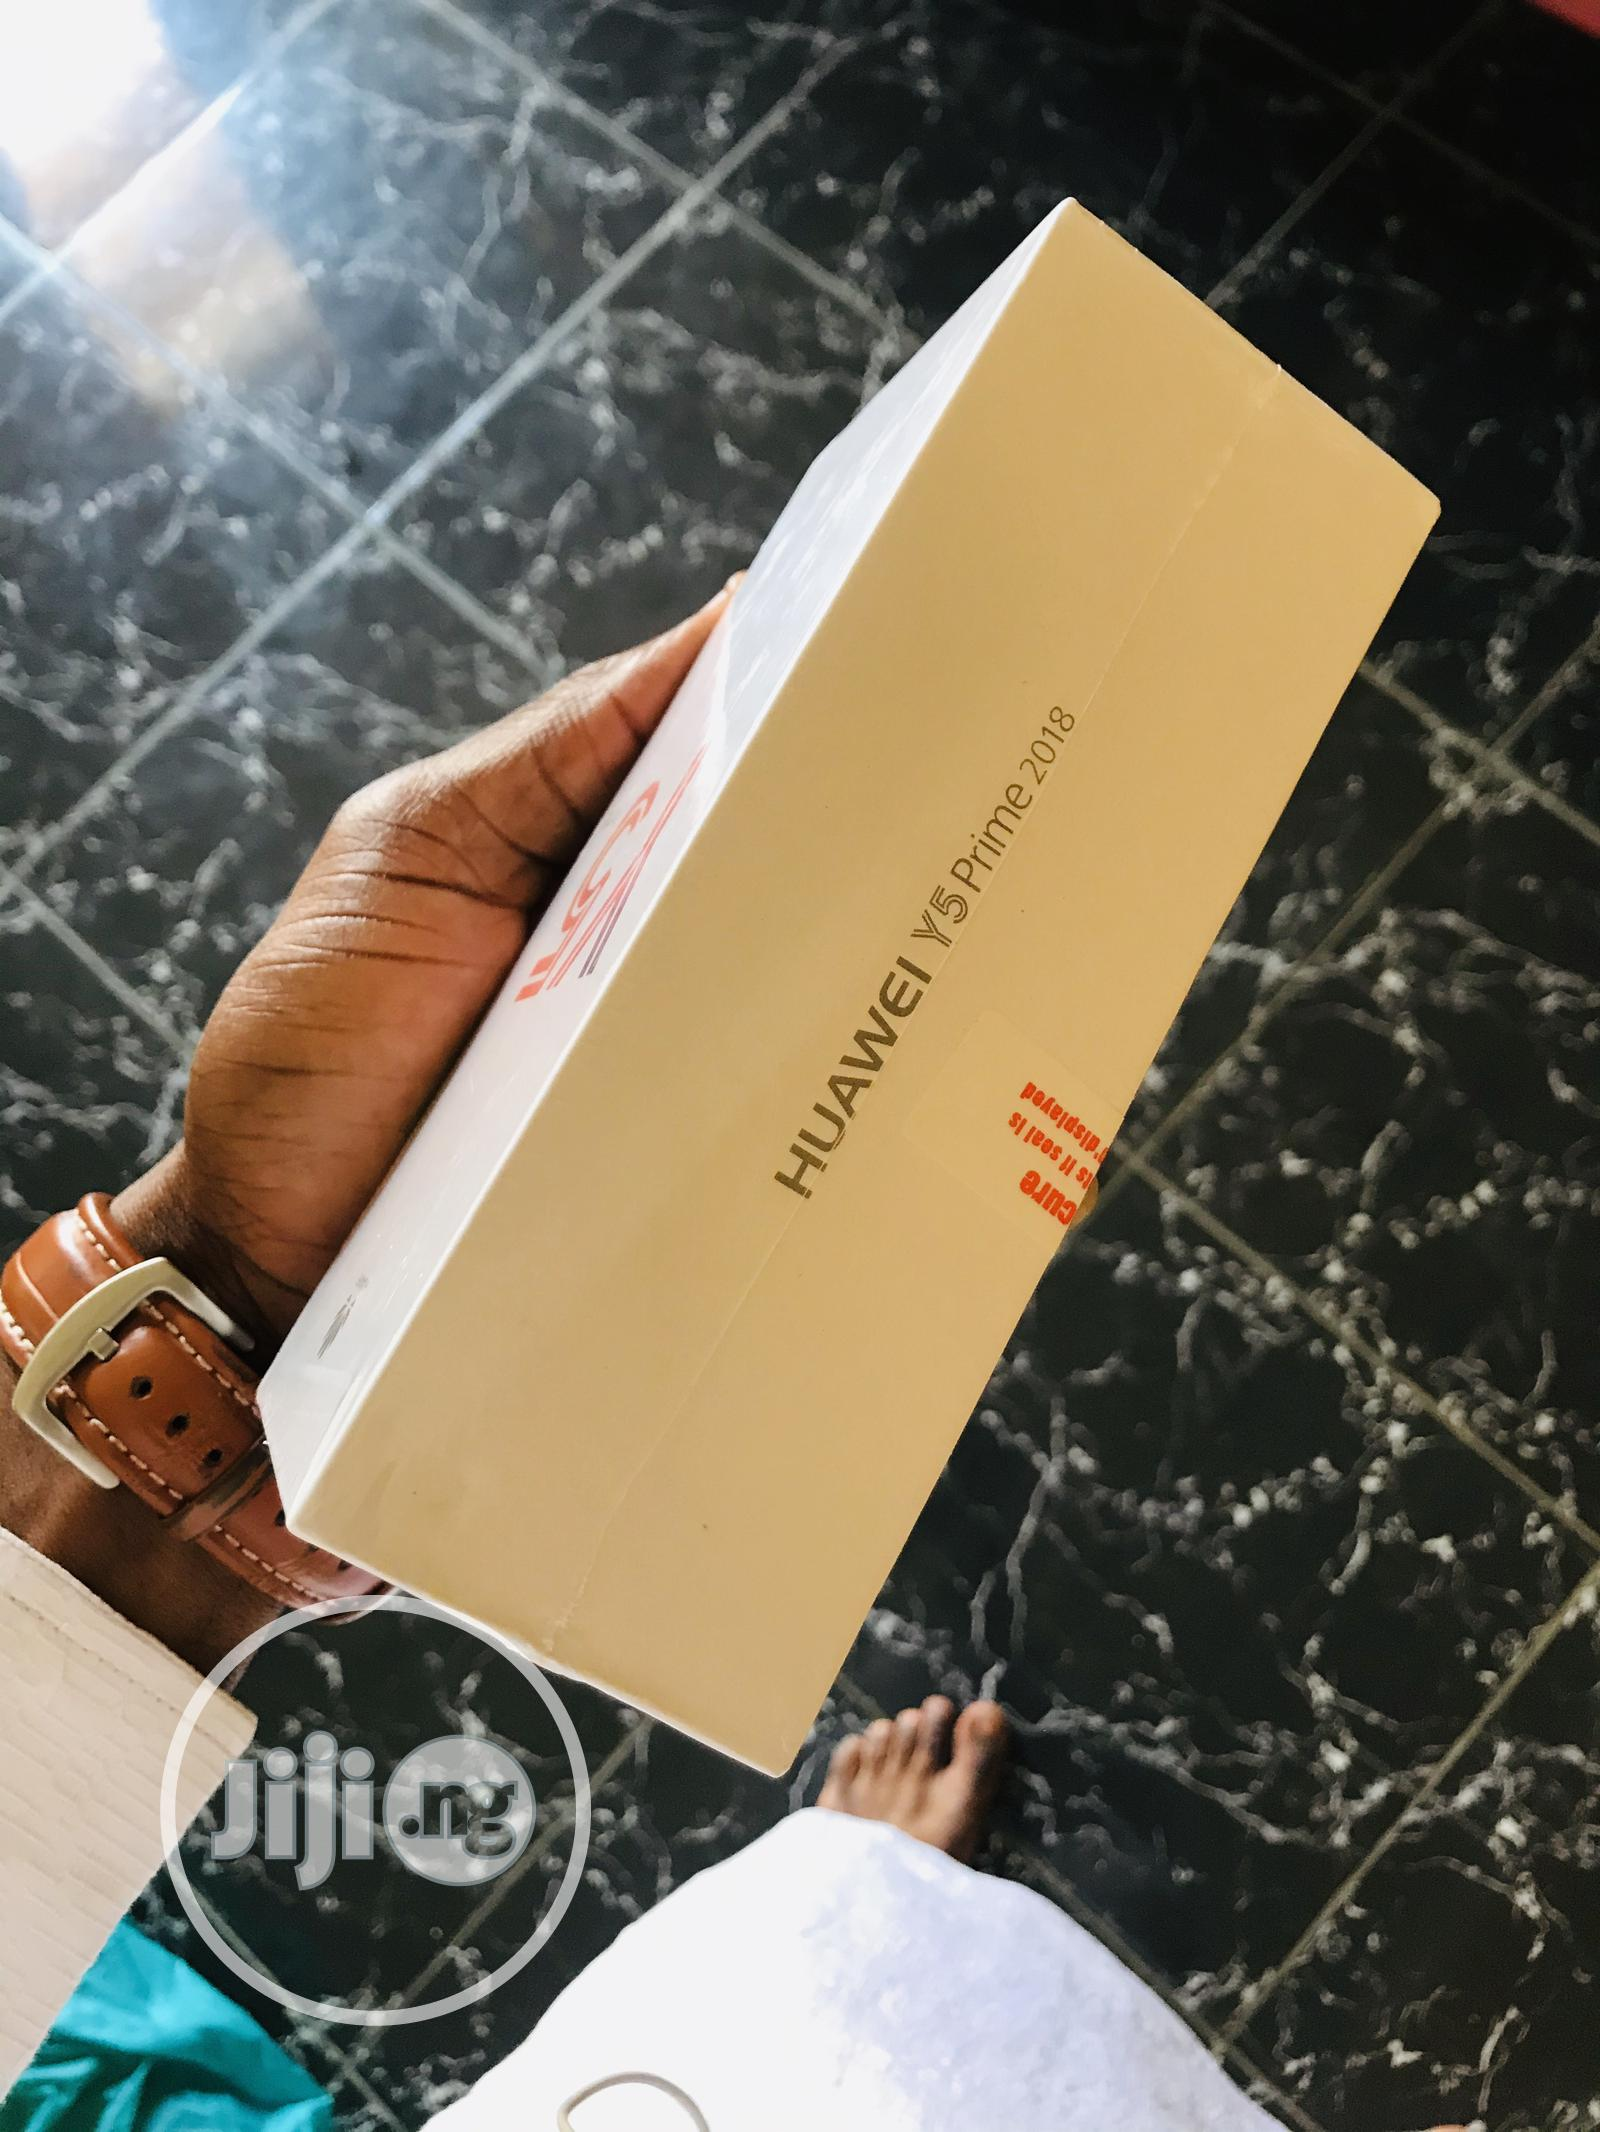 New Huawei Y5 16 GB | Mobile Phones for sale in Wuse, Abuja (FCT) State, Nigeria